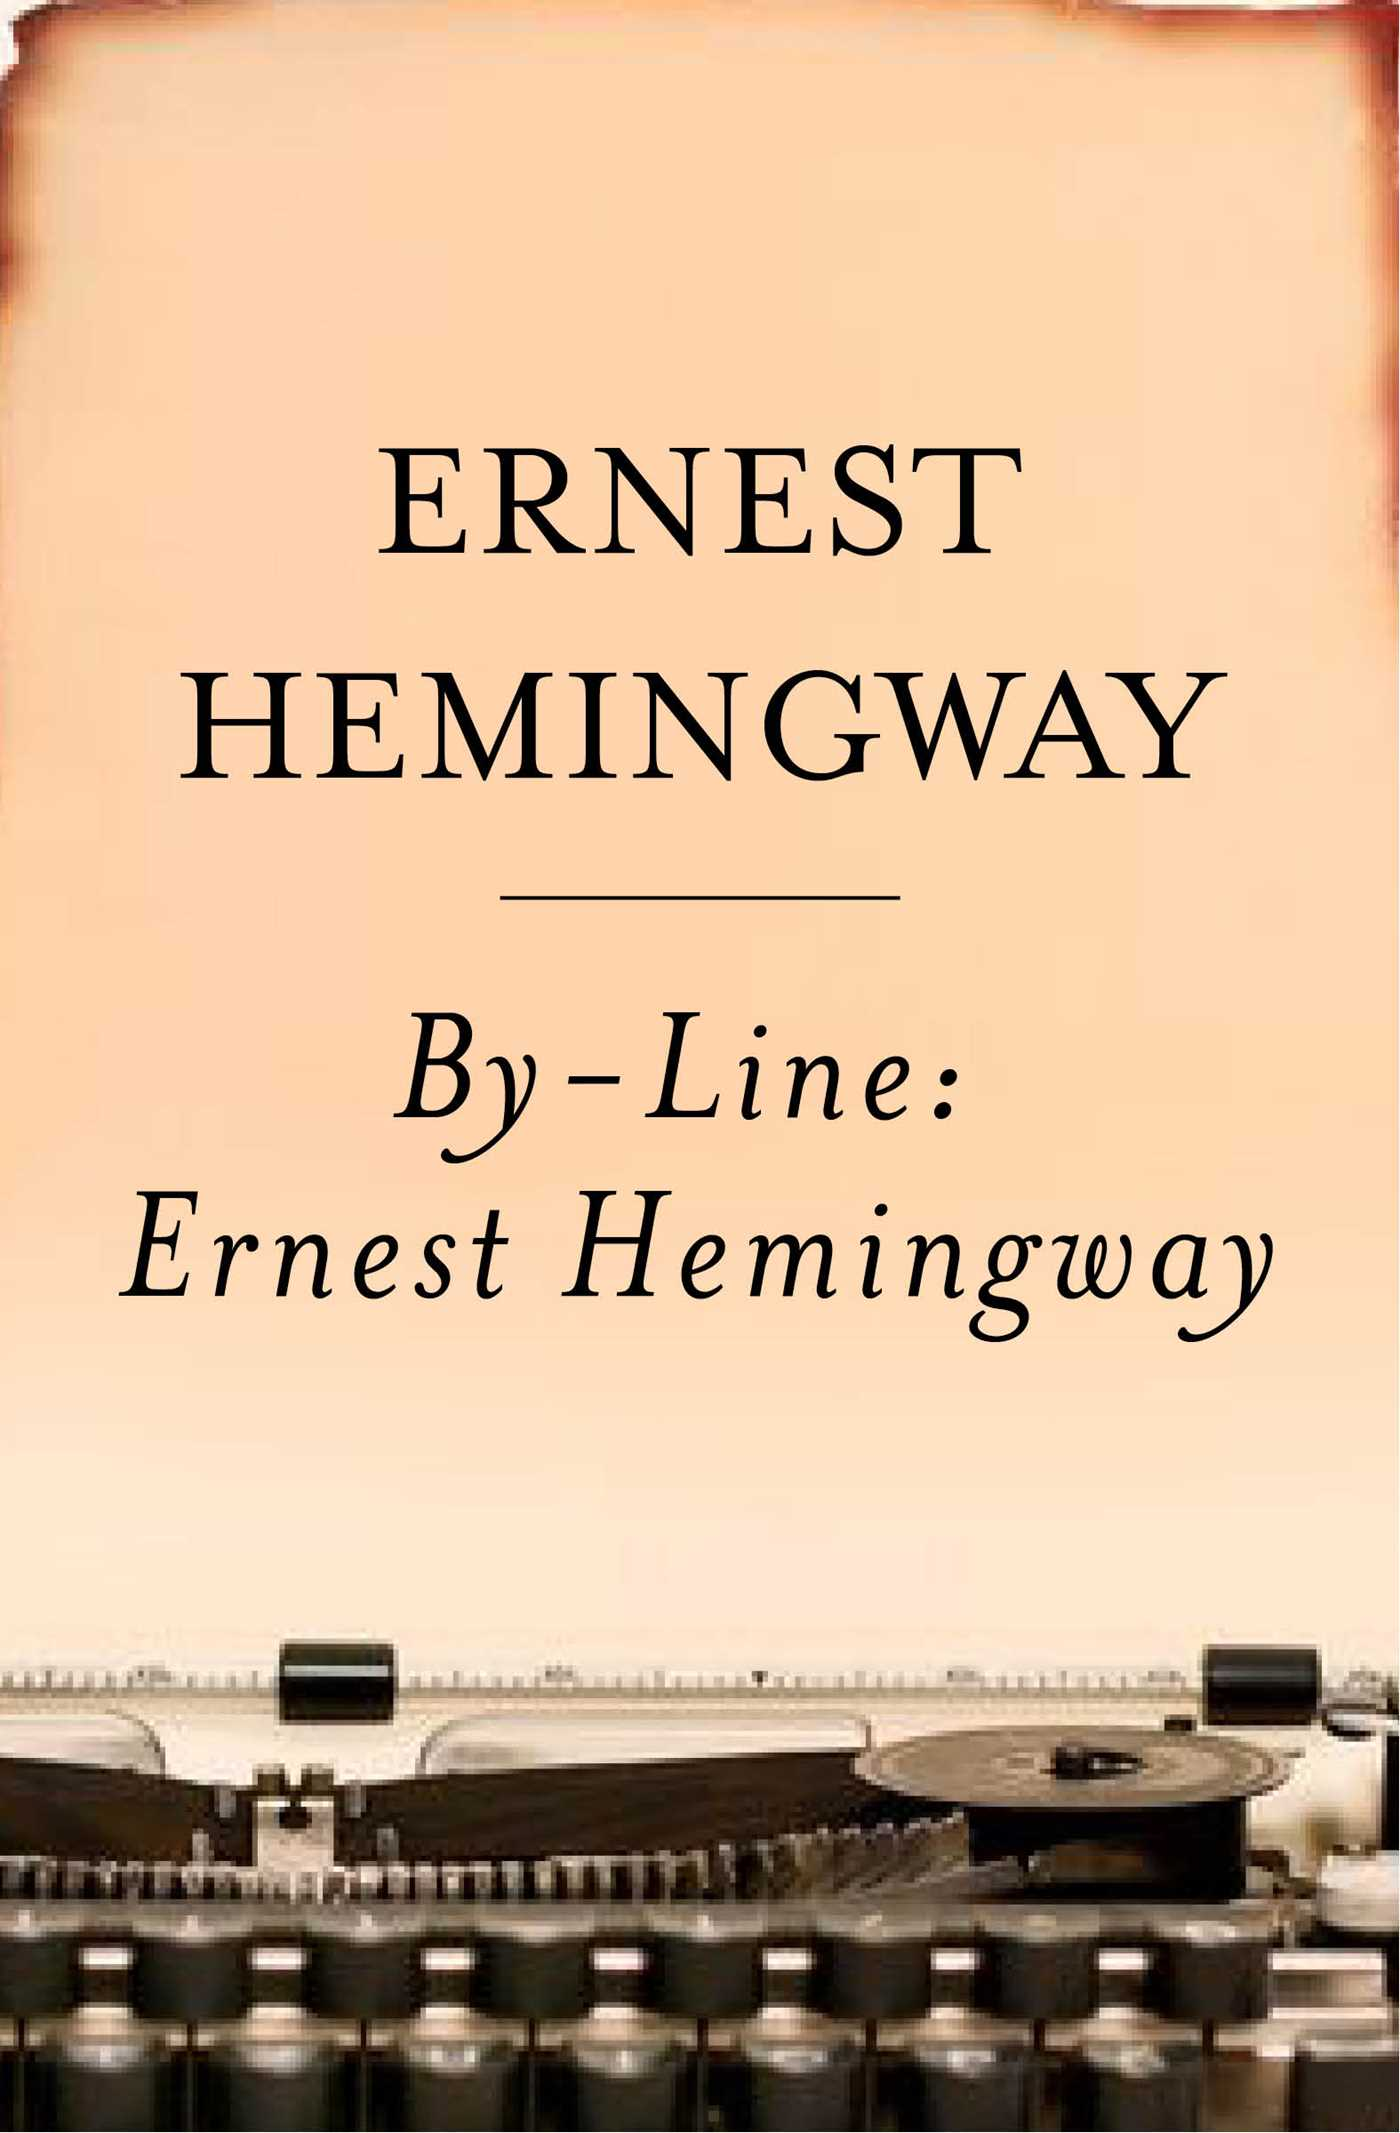 a fascination of wars the life and works of ernest hemingway A man can be destroyed but not defeated: ernest hemingway's near-death experience and declining health.